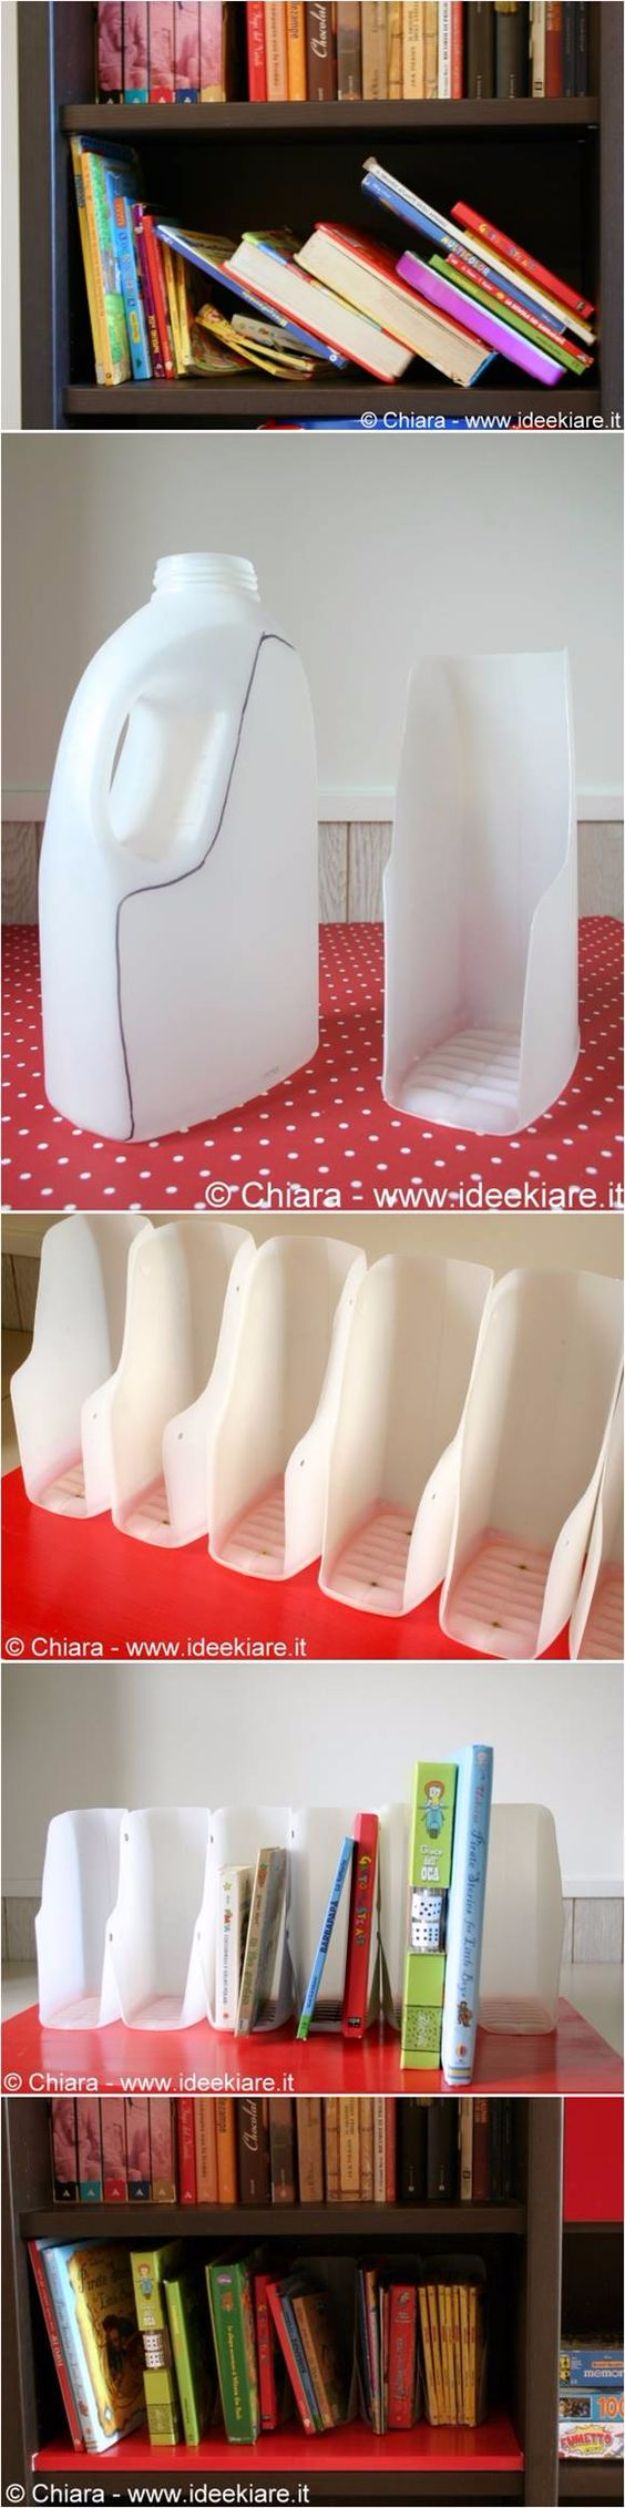 Cool DIY Projects Made With Plastic Bottles - DIY Book Organizer From Plastic Bottles - Best Easy Crafts and DIY Ideas Made With A Recycled Plastic Bottle - Jewlery, Home Decor, Planters, Craft Project Tutorials - Cheap Ways to Decorate and Creative DIY Gifts for Christmas Holidays - Fun Projects for Adults, Teens and Kids http://diyjoy.com/diy-projects-plastic-bottles